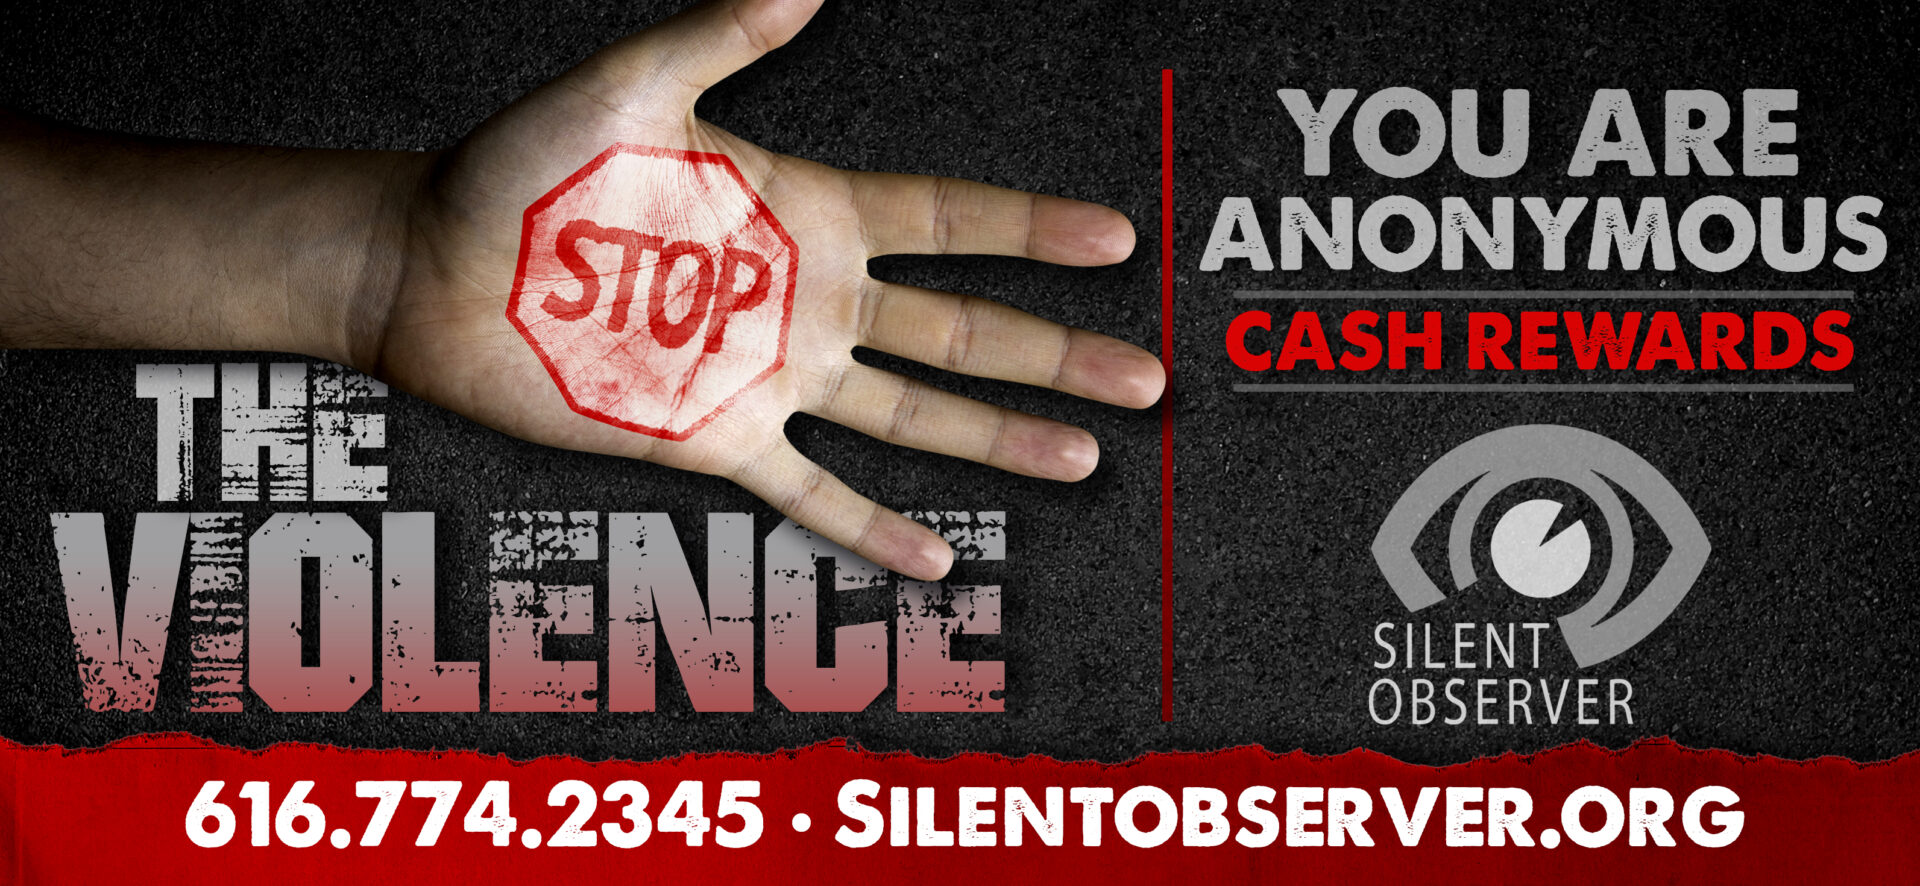 Silent Observer Increases Rewards To Help Stop The Violence